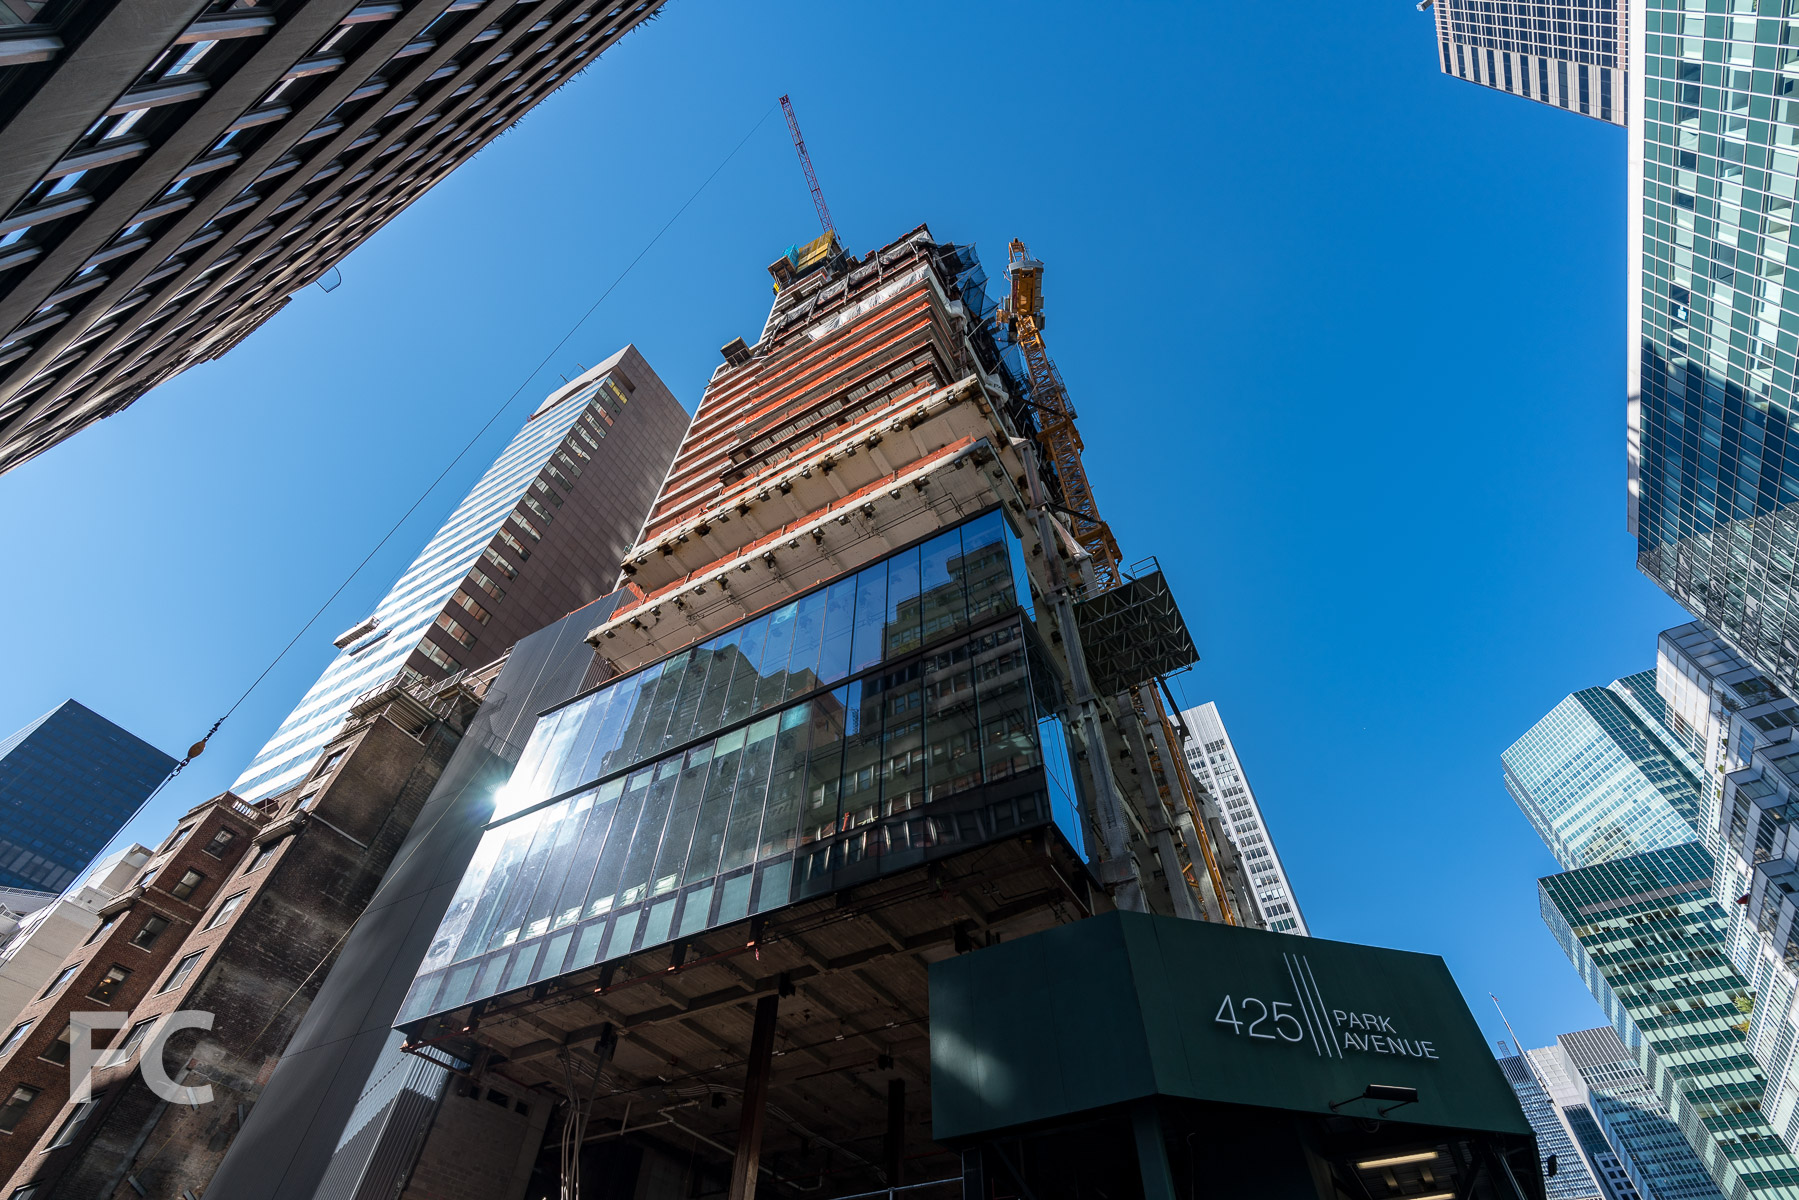 Construction Tour: 425 Park Avenue